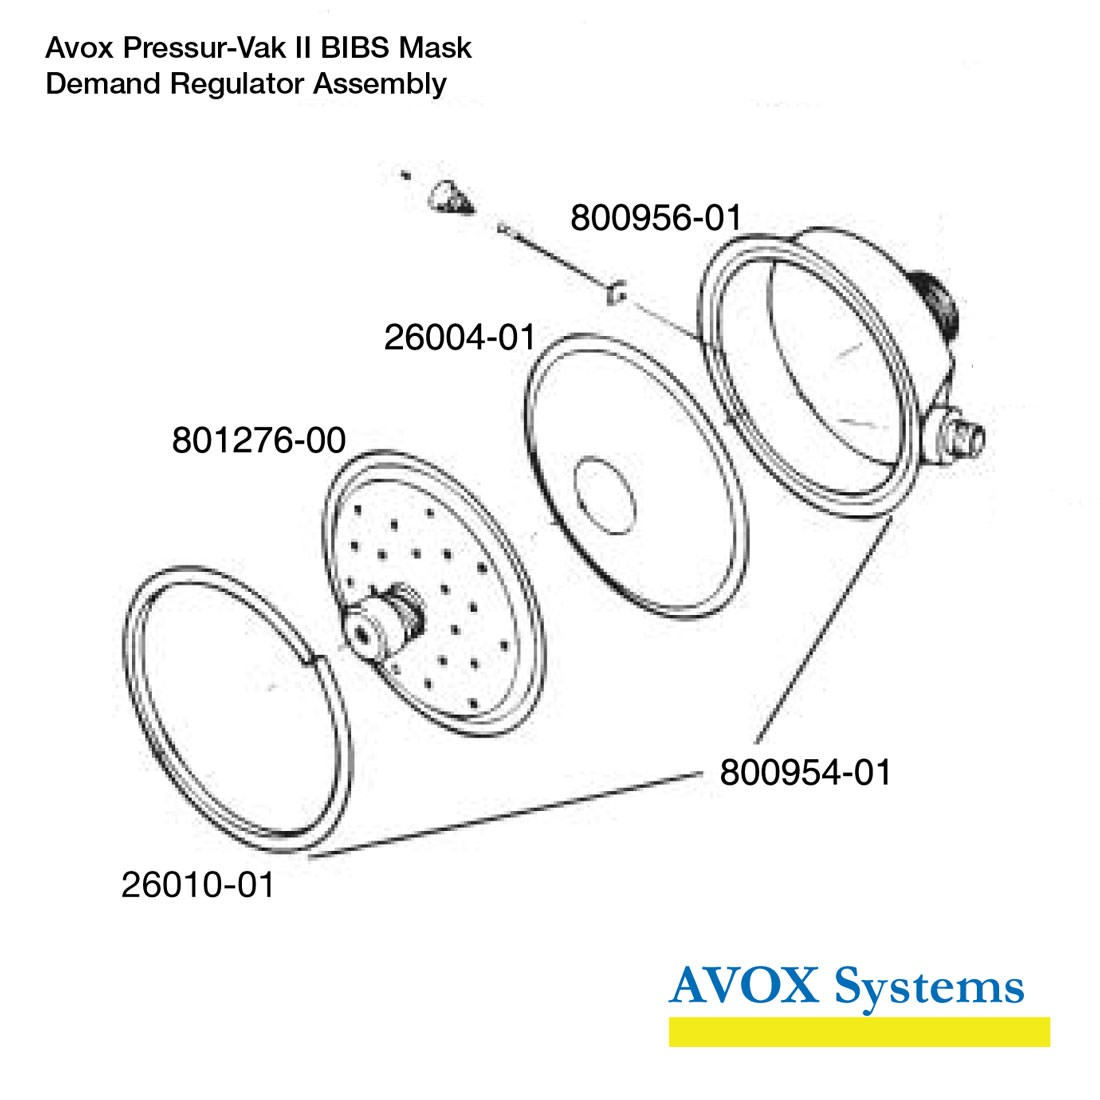 Avox 803139-01-XX Pressur-Vak II - without Face Seal/Harness without 1st Stage Regulator Assembly without Microphone - Demand Regulator Assembly